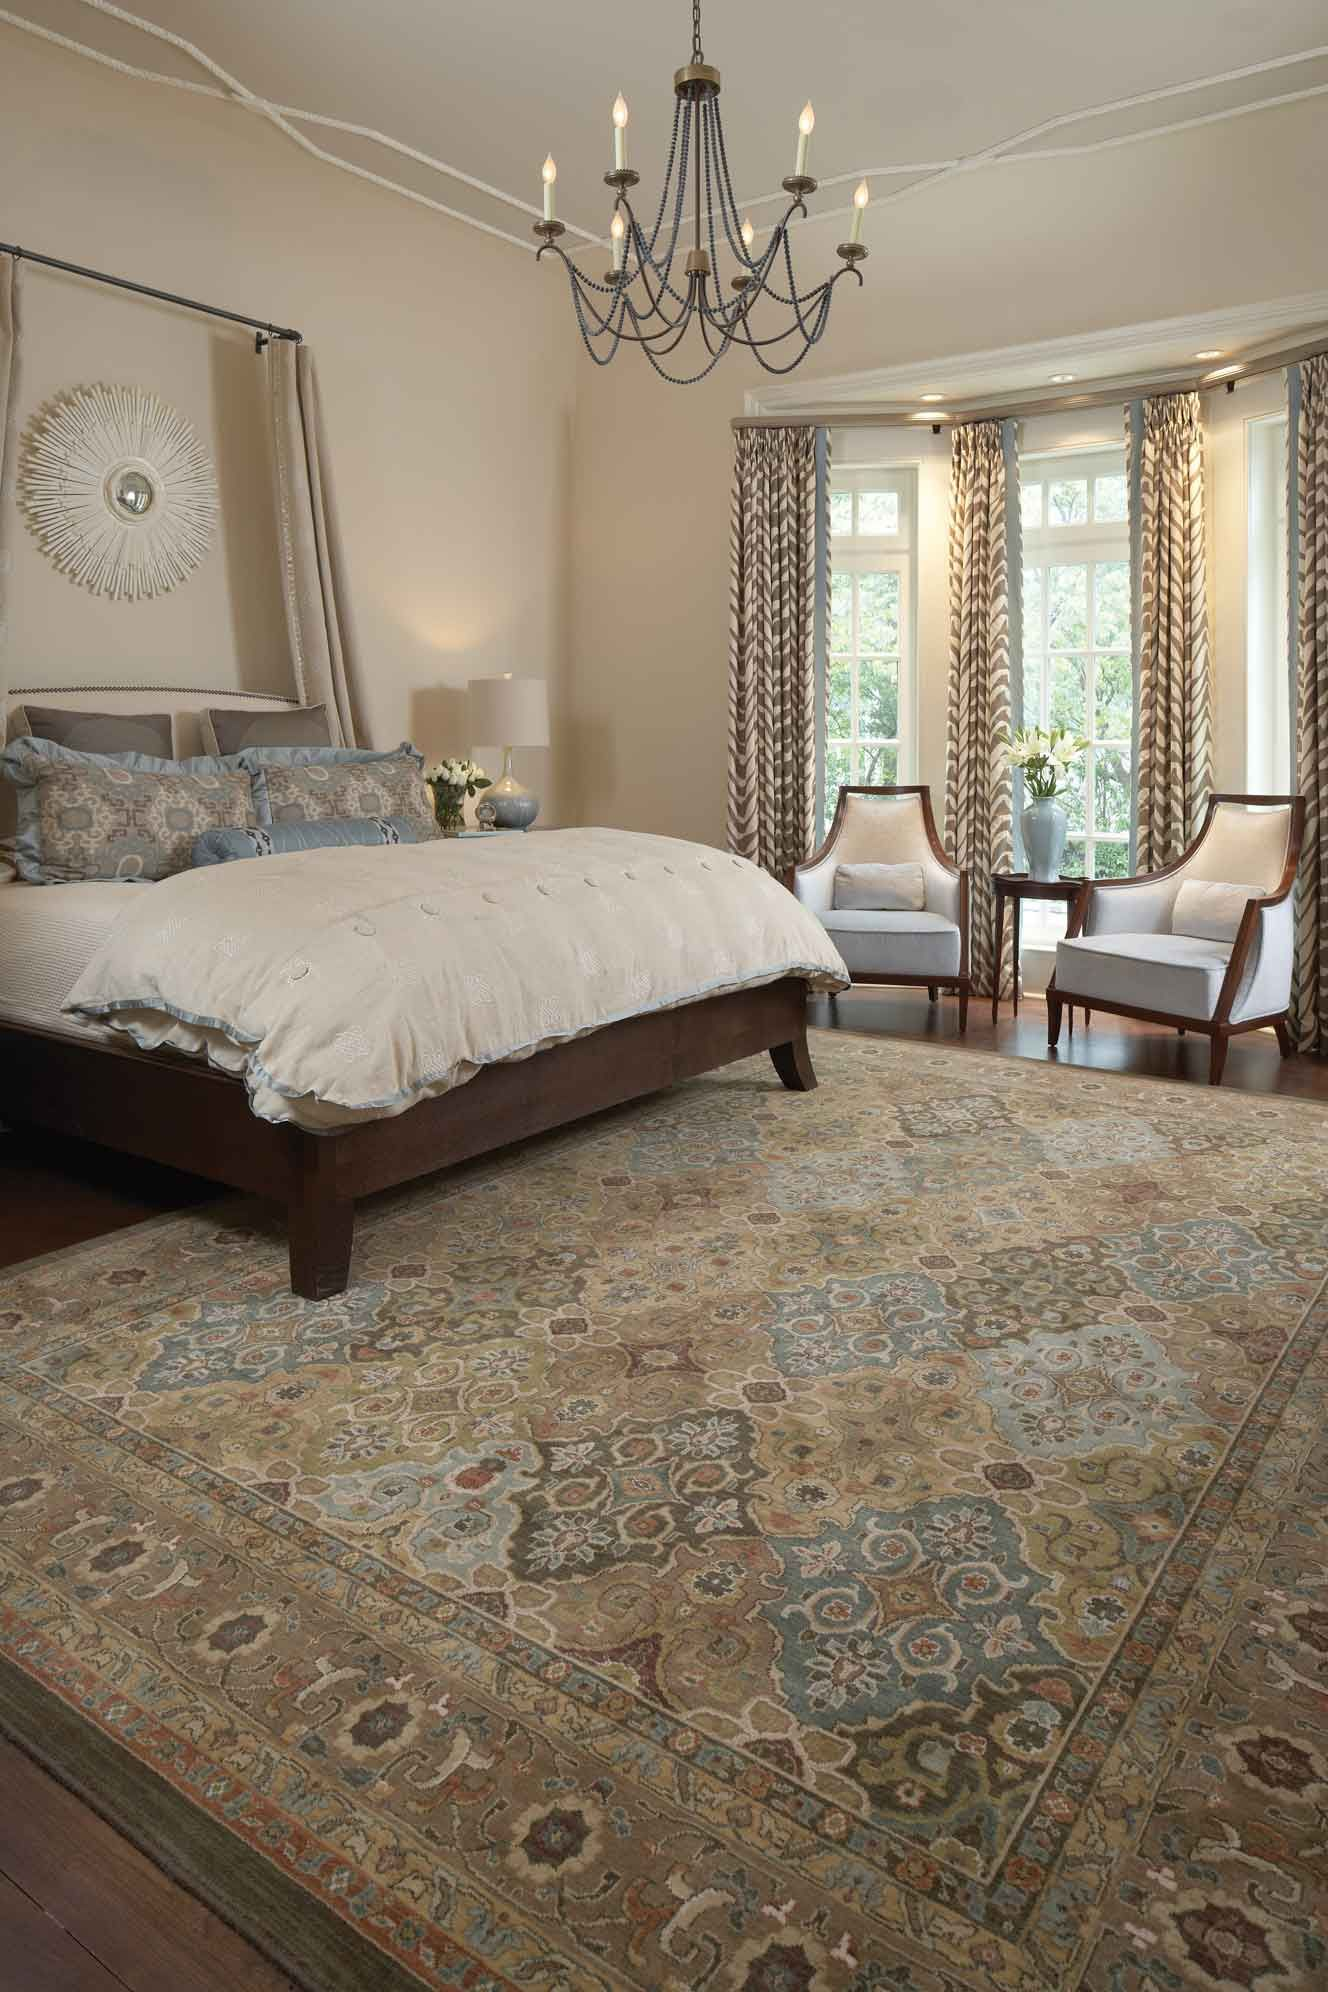 Rotmans rugs home decor - Decorating with area rugs ...